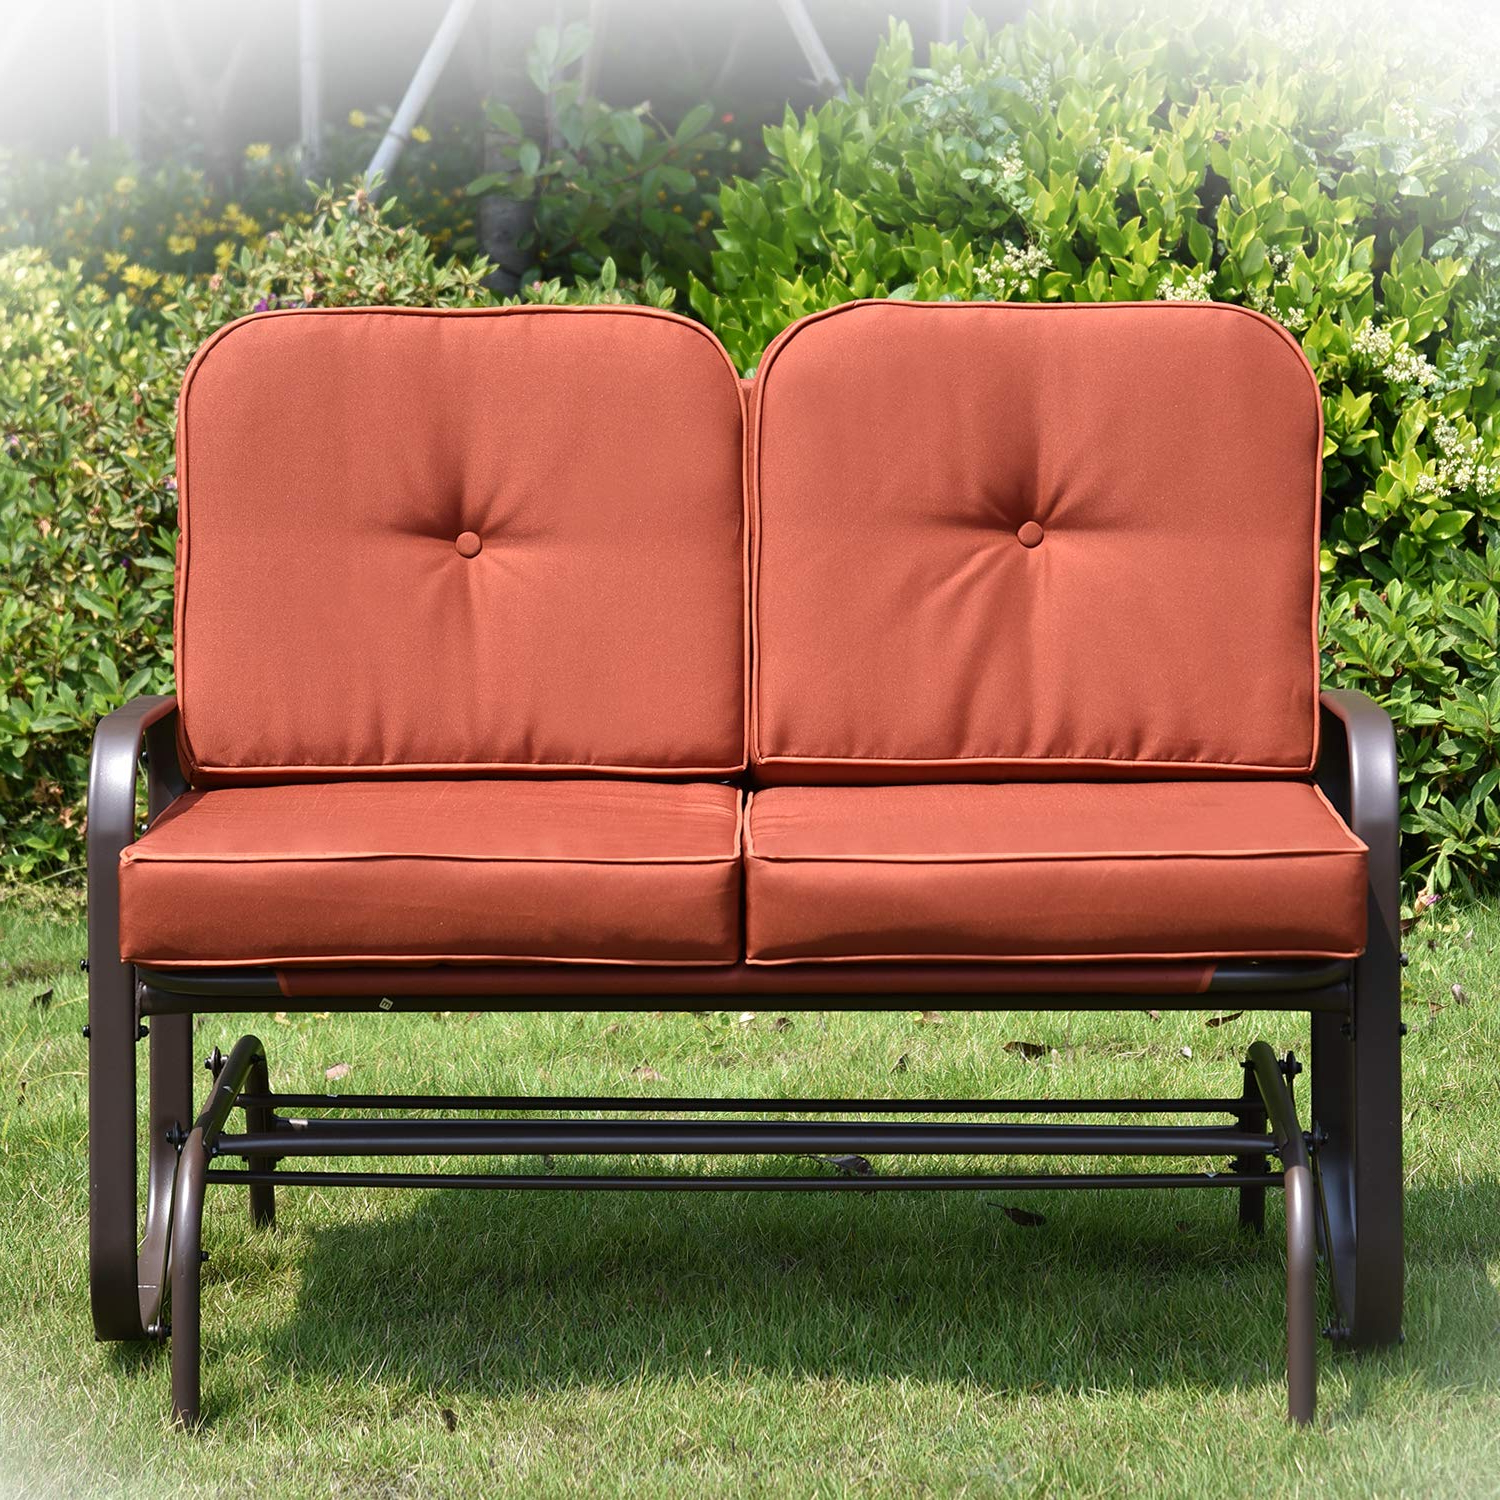 Popular Amazon: Broad Patio Glider Bench Loveseat With Removable Inside Rocking Glider Benches With Cushions (View 15 of 30)